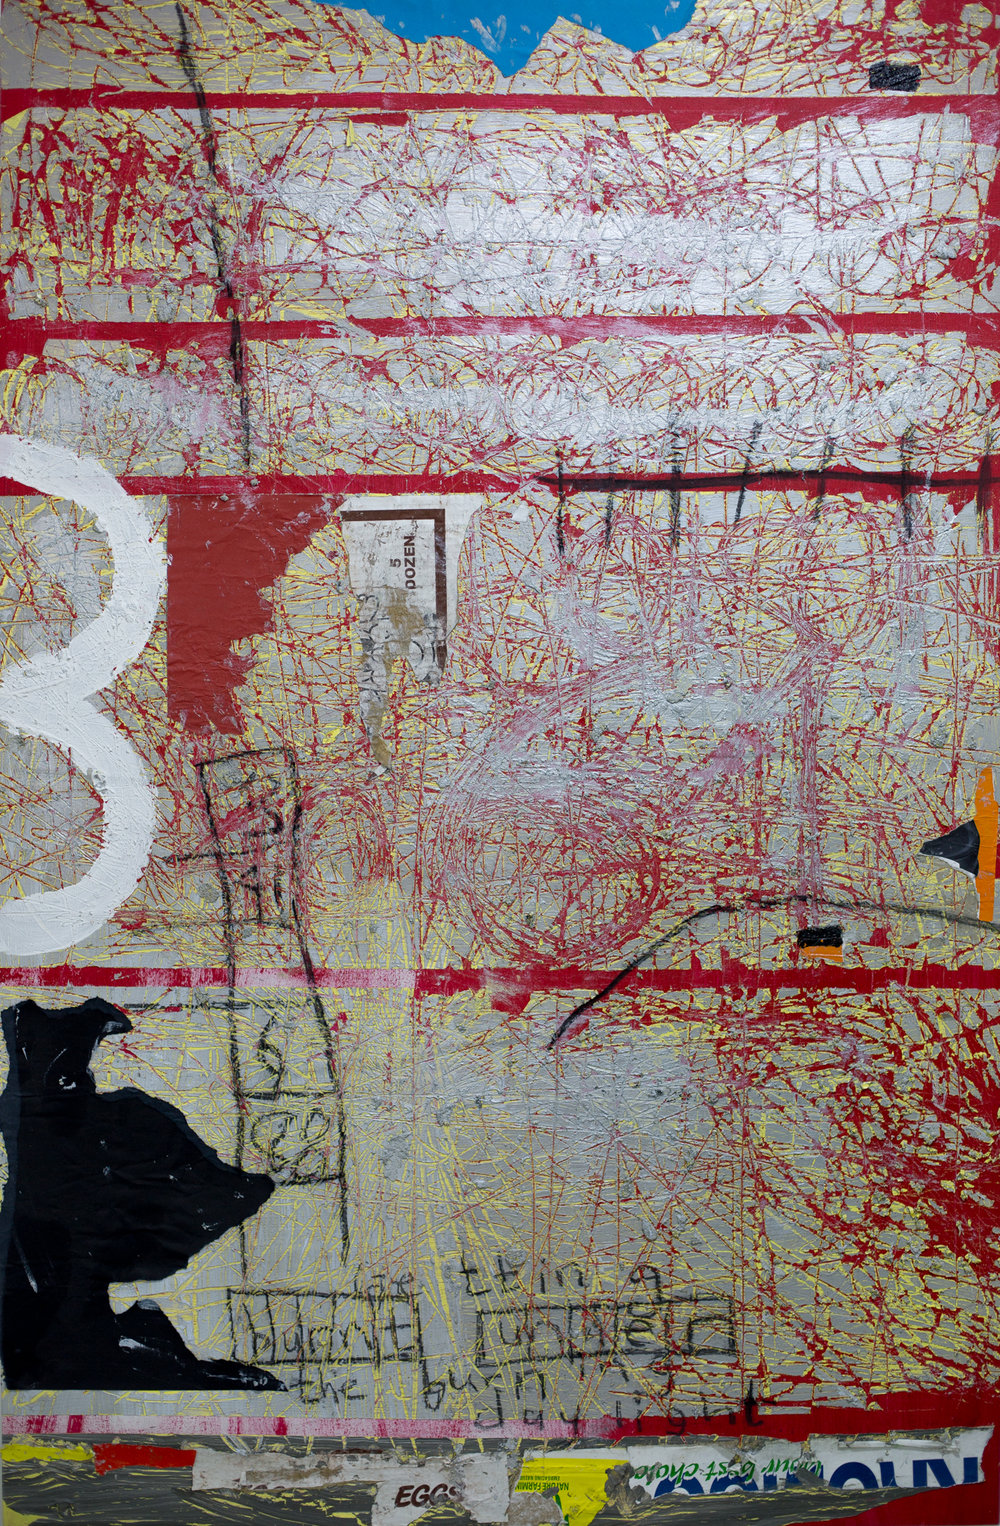 ' Getting Burned in the Day Light I '   Gideon Appah  Acrylic, wood glue and charcoal on canvas  975 x 25 x 149 mm  R 25 000.00 excl. vat